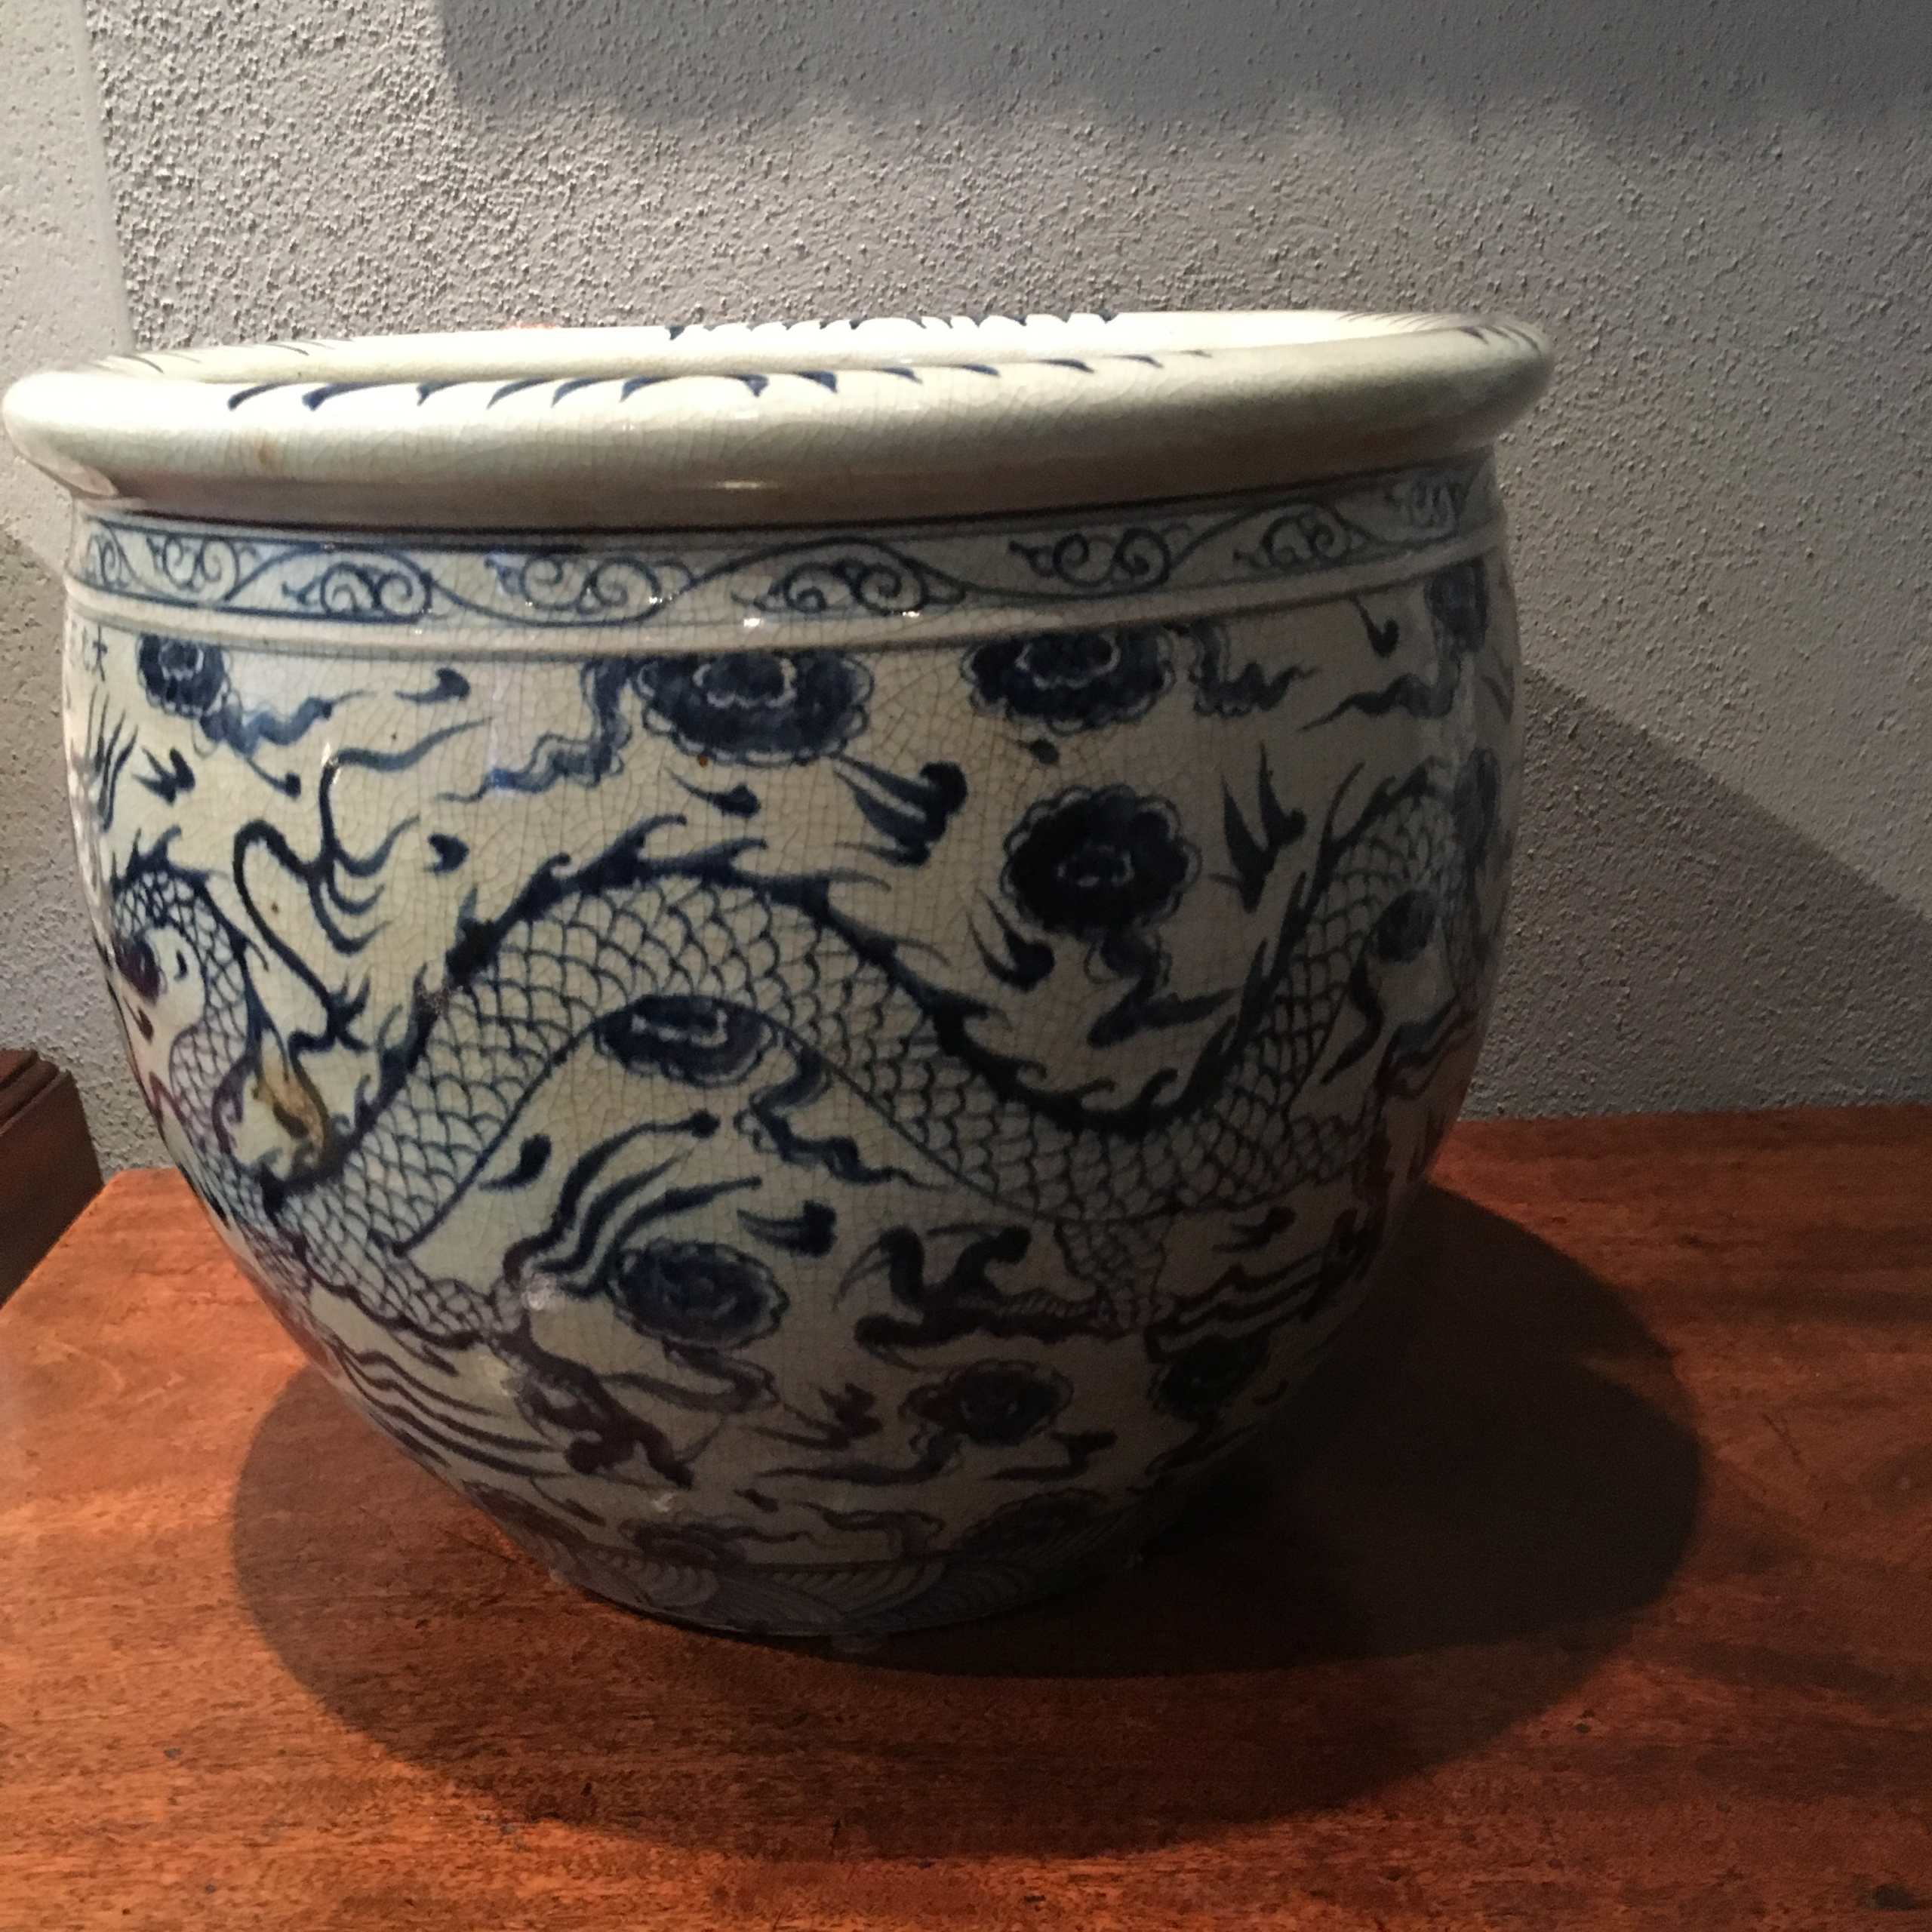 Cachepot/Fishbowl, Qing Dynastie